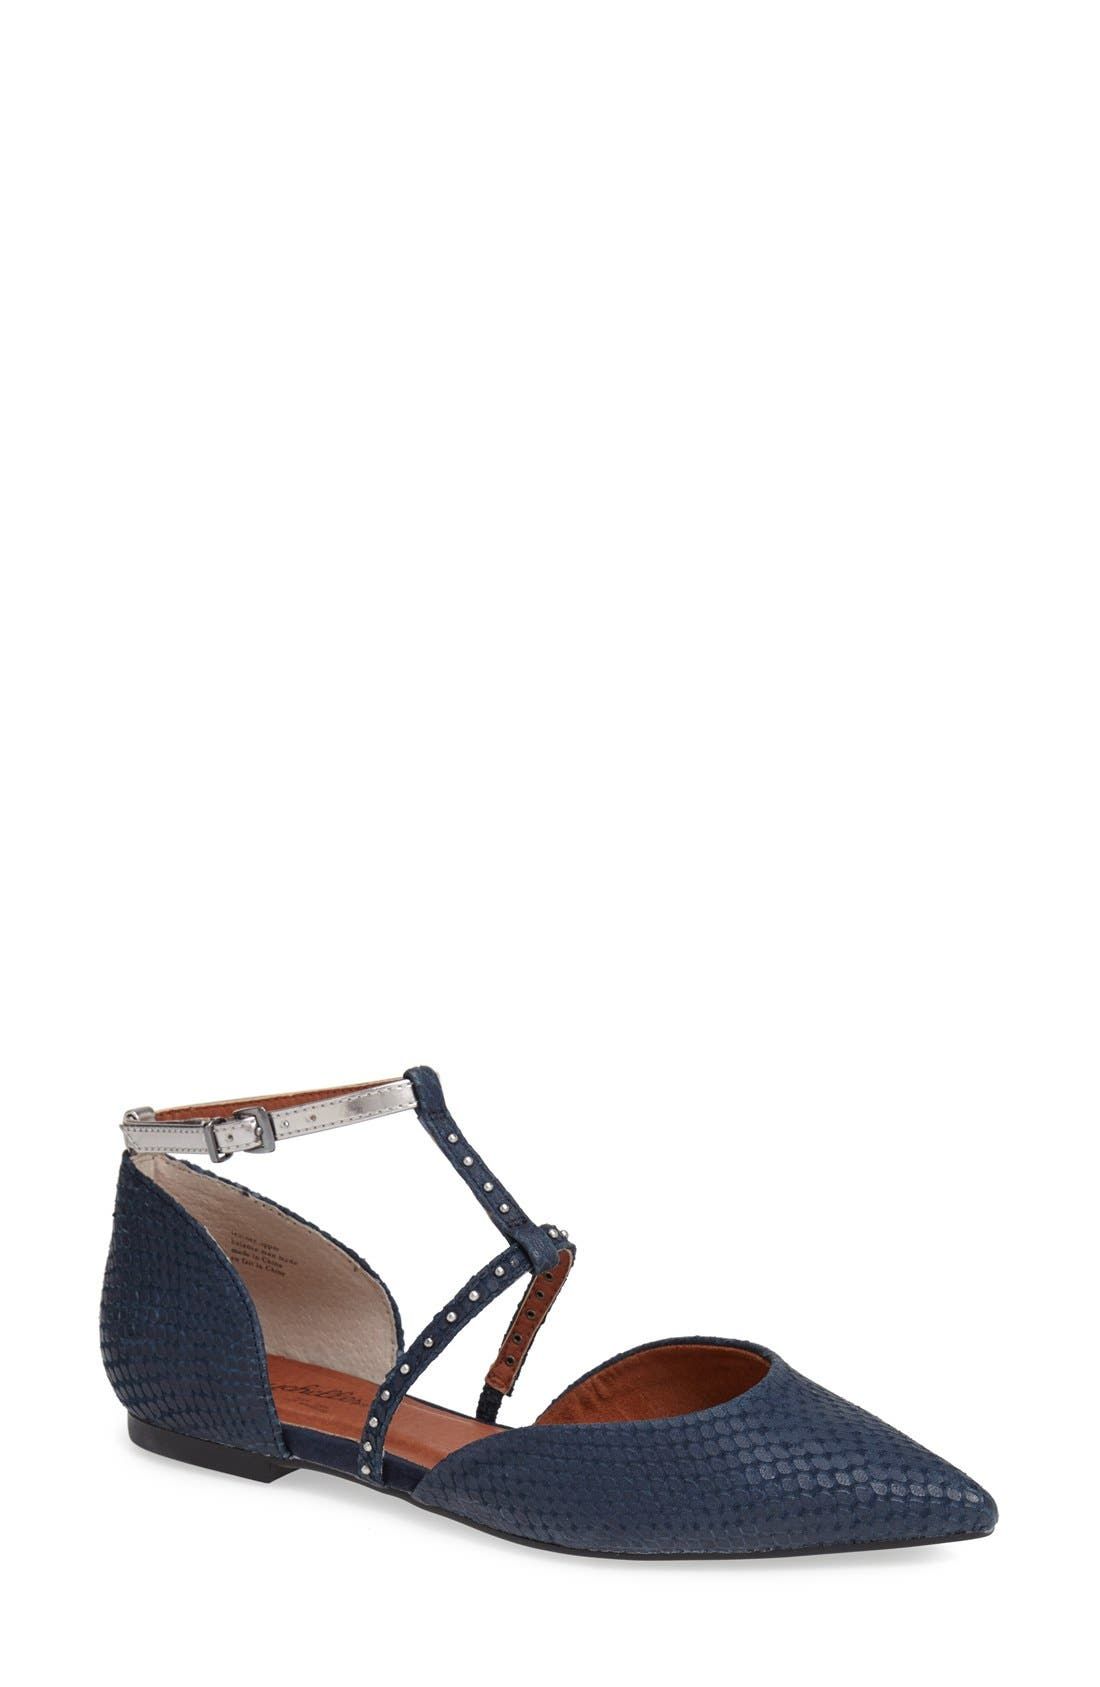 Main Image - Seychelles 'Uncovered' Leather Ankle Strap Flat (Women)